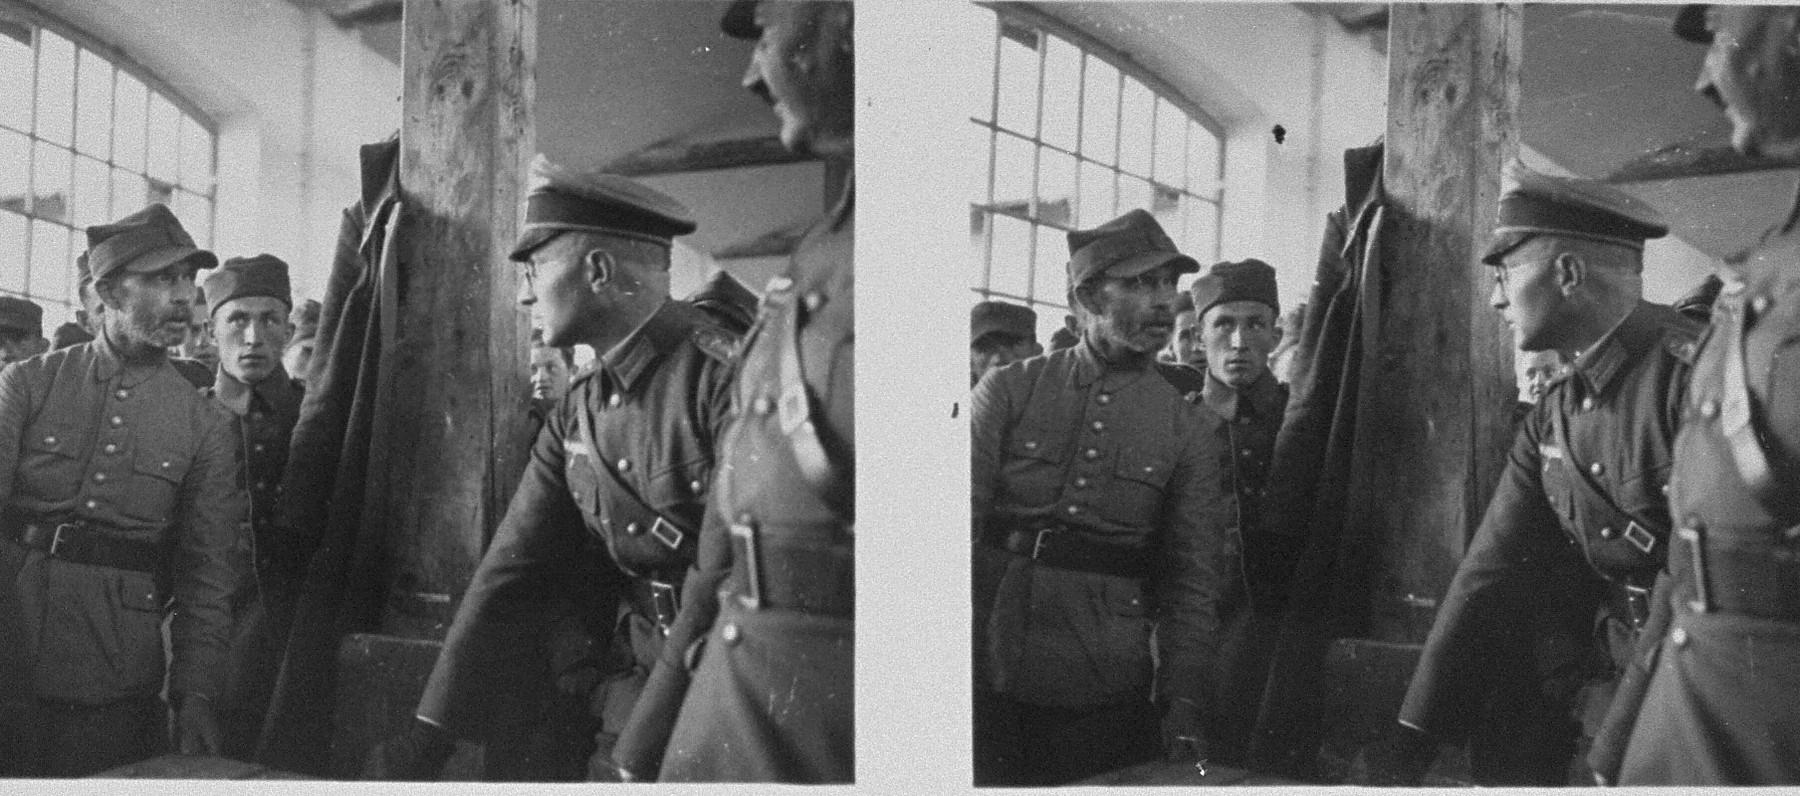 Stereoscopic photograph of German military officers interrogating Polish POWs.